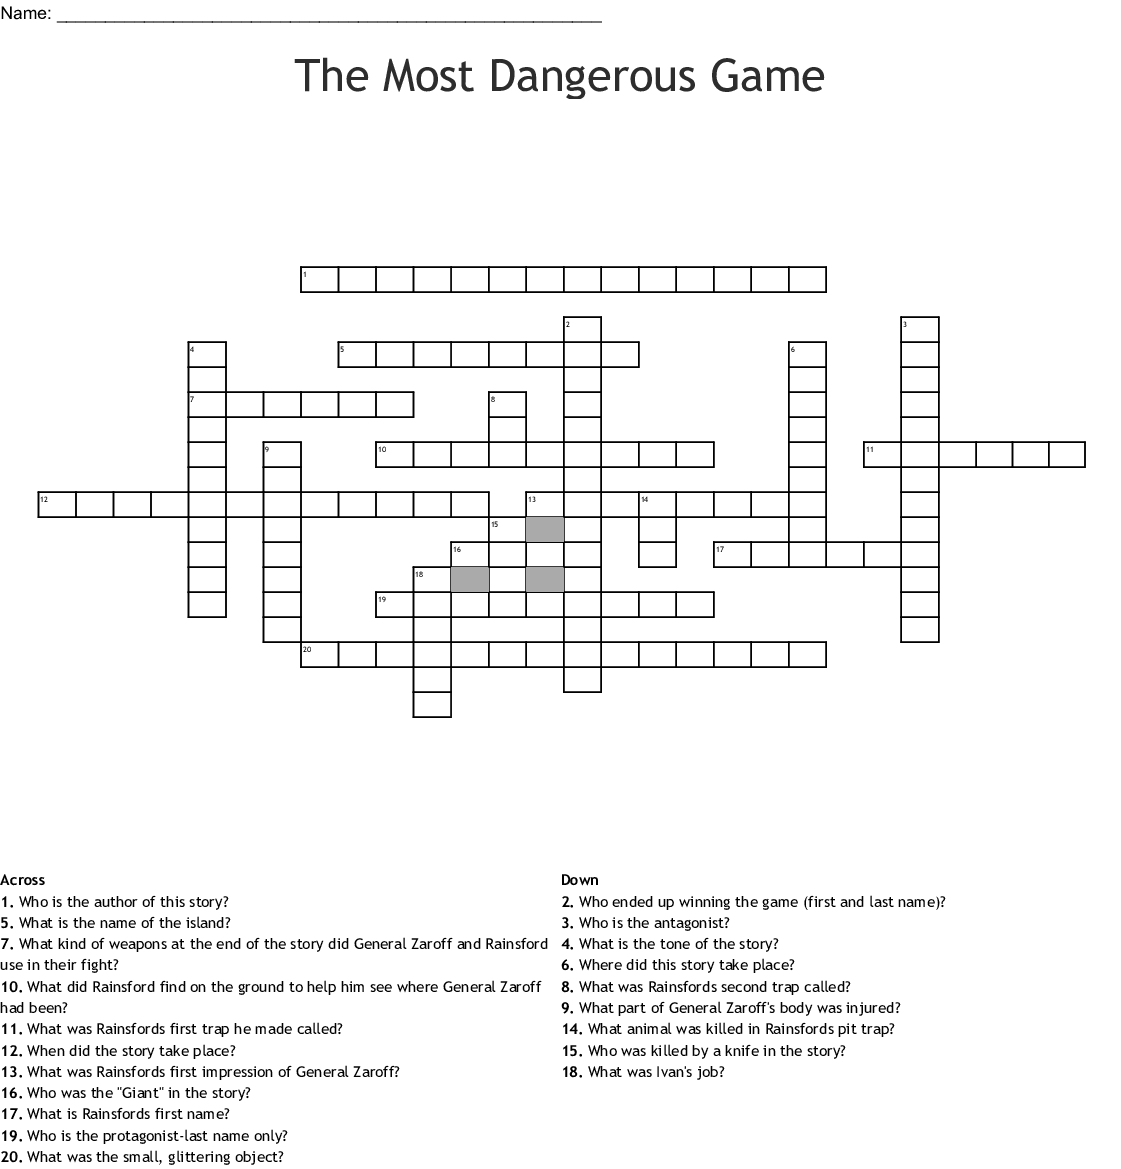 The Most Dangerous Game Word Search